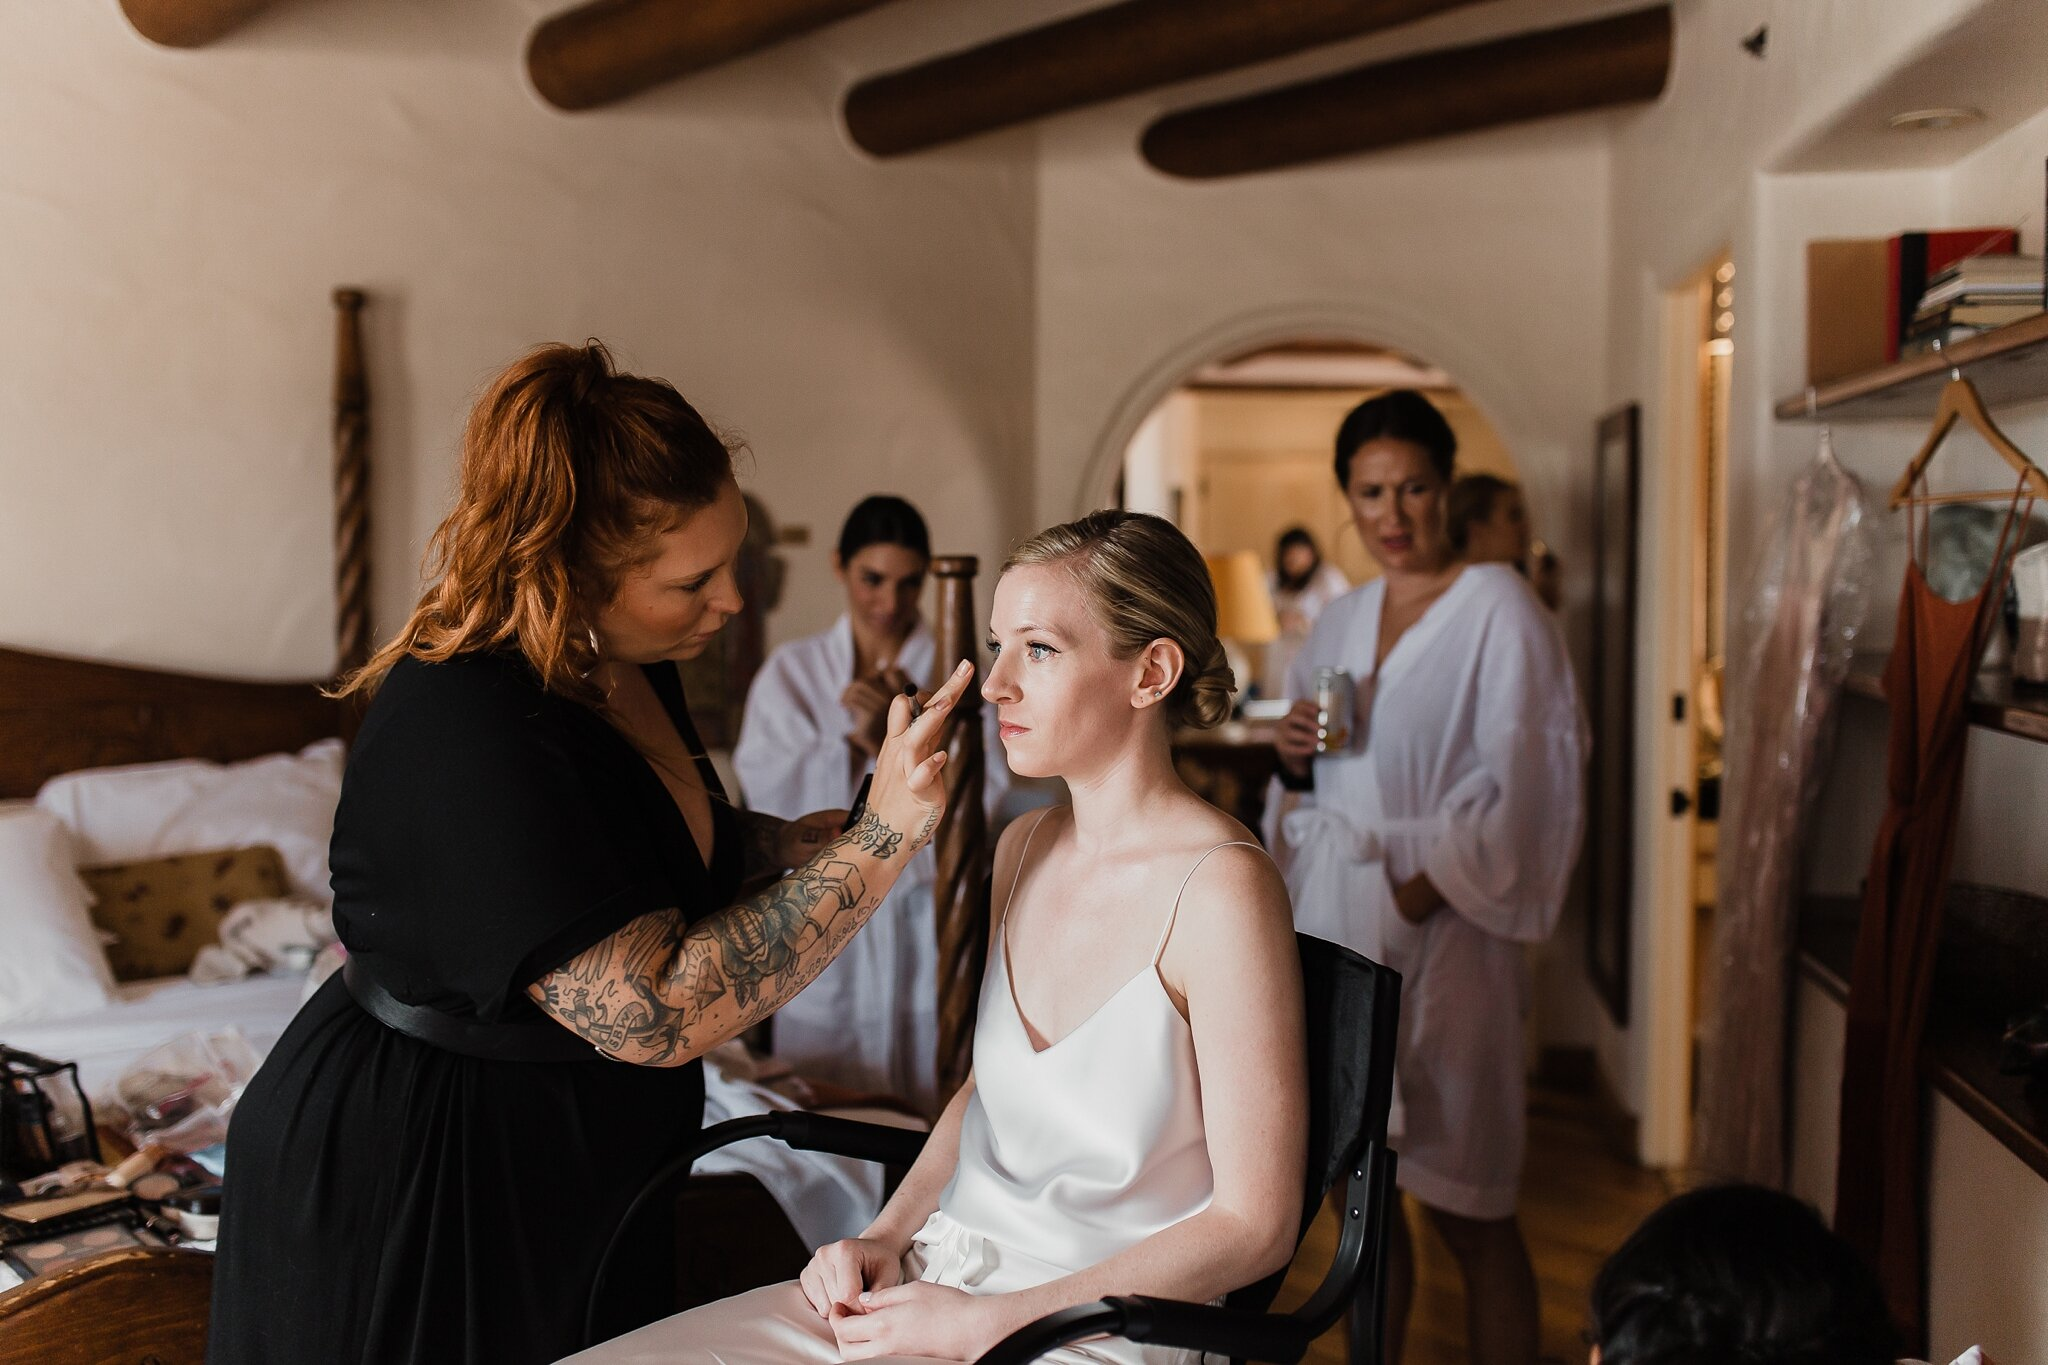 Alicia+lucia+photography+-+albuquerque+wedding+photographer+-+santa+fe+wedding+photography+-+new+mexico+wedding+photographer+-+new+mexico+wedding+-+la+fonda+wedding+-+la+fonda+on+the+plaza+-+santa+fe+wedding+-+brooklyn+bride_0003.jpg